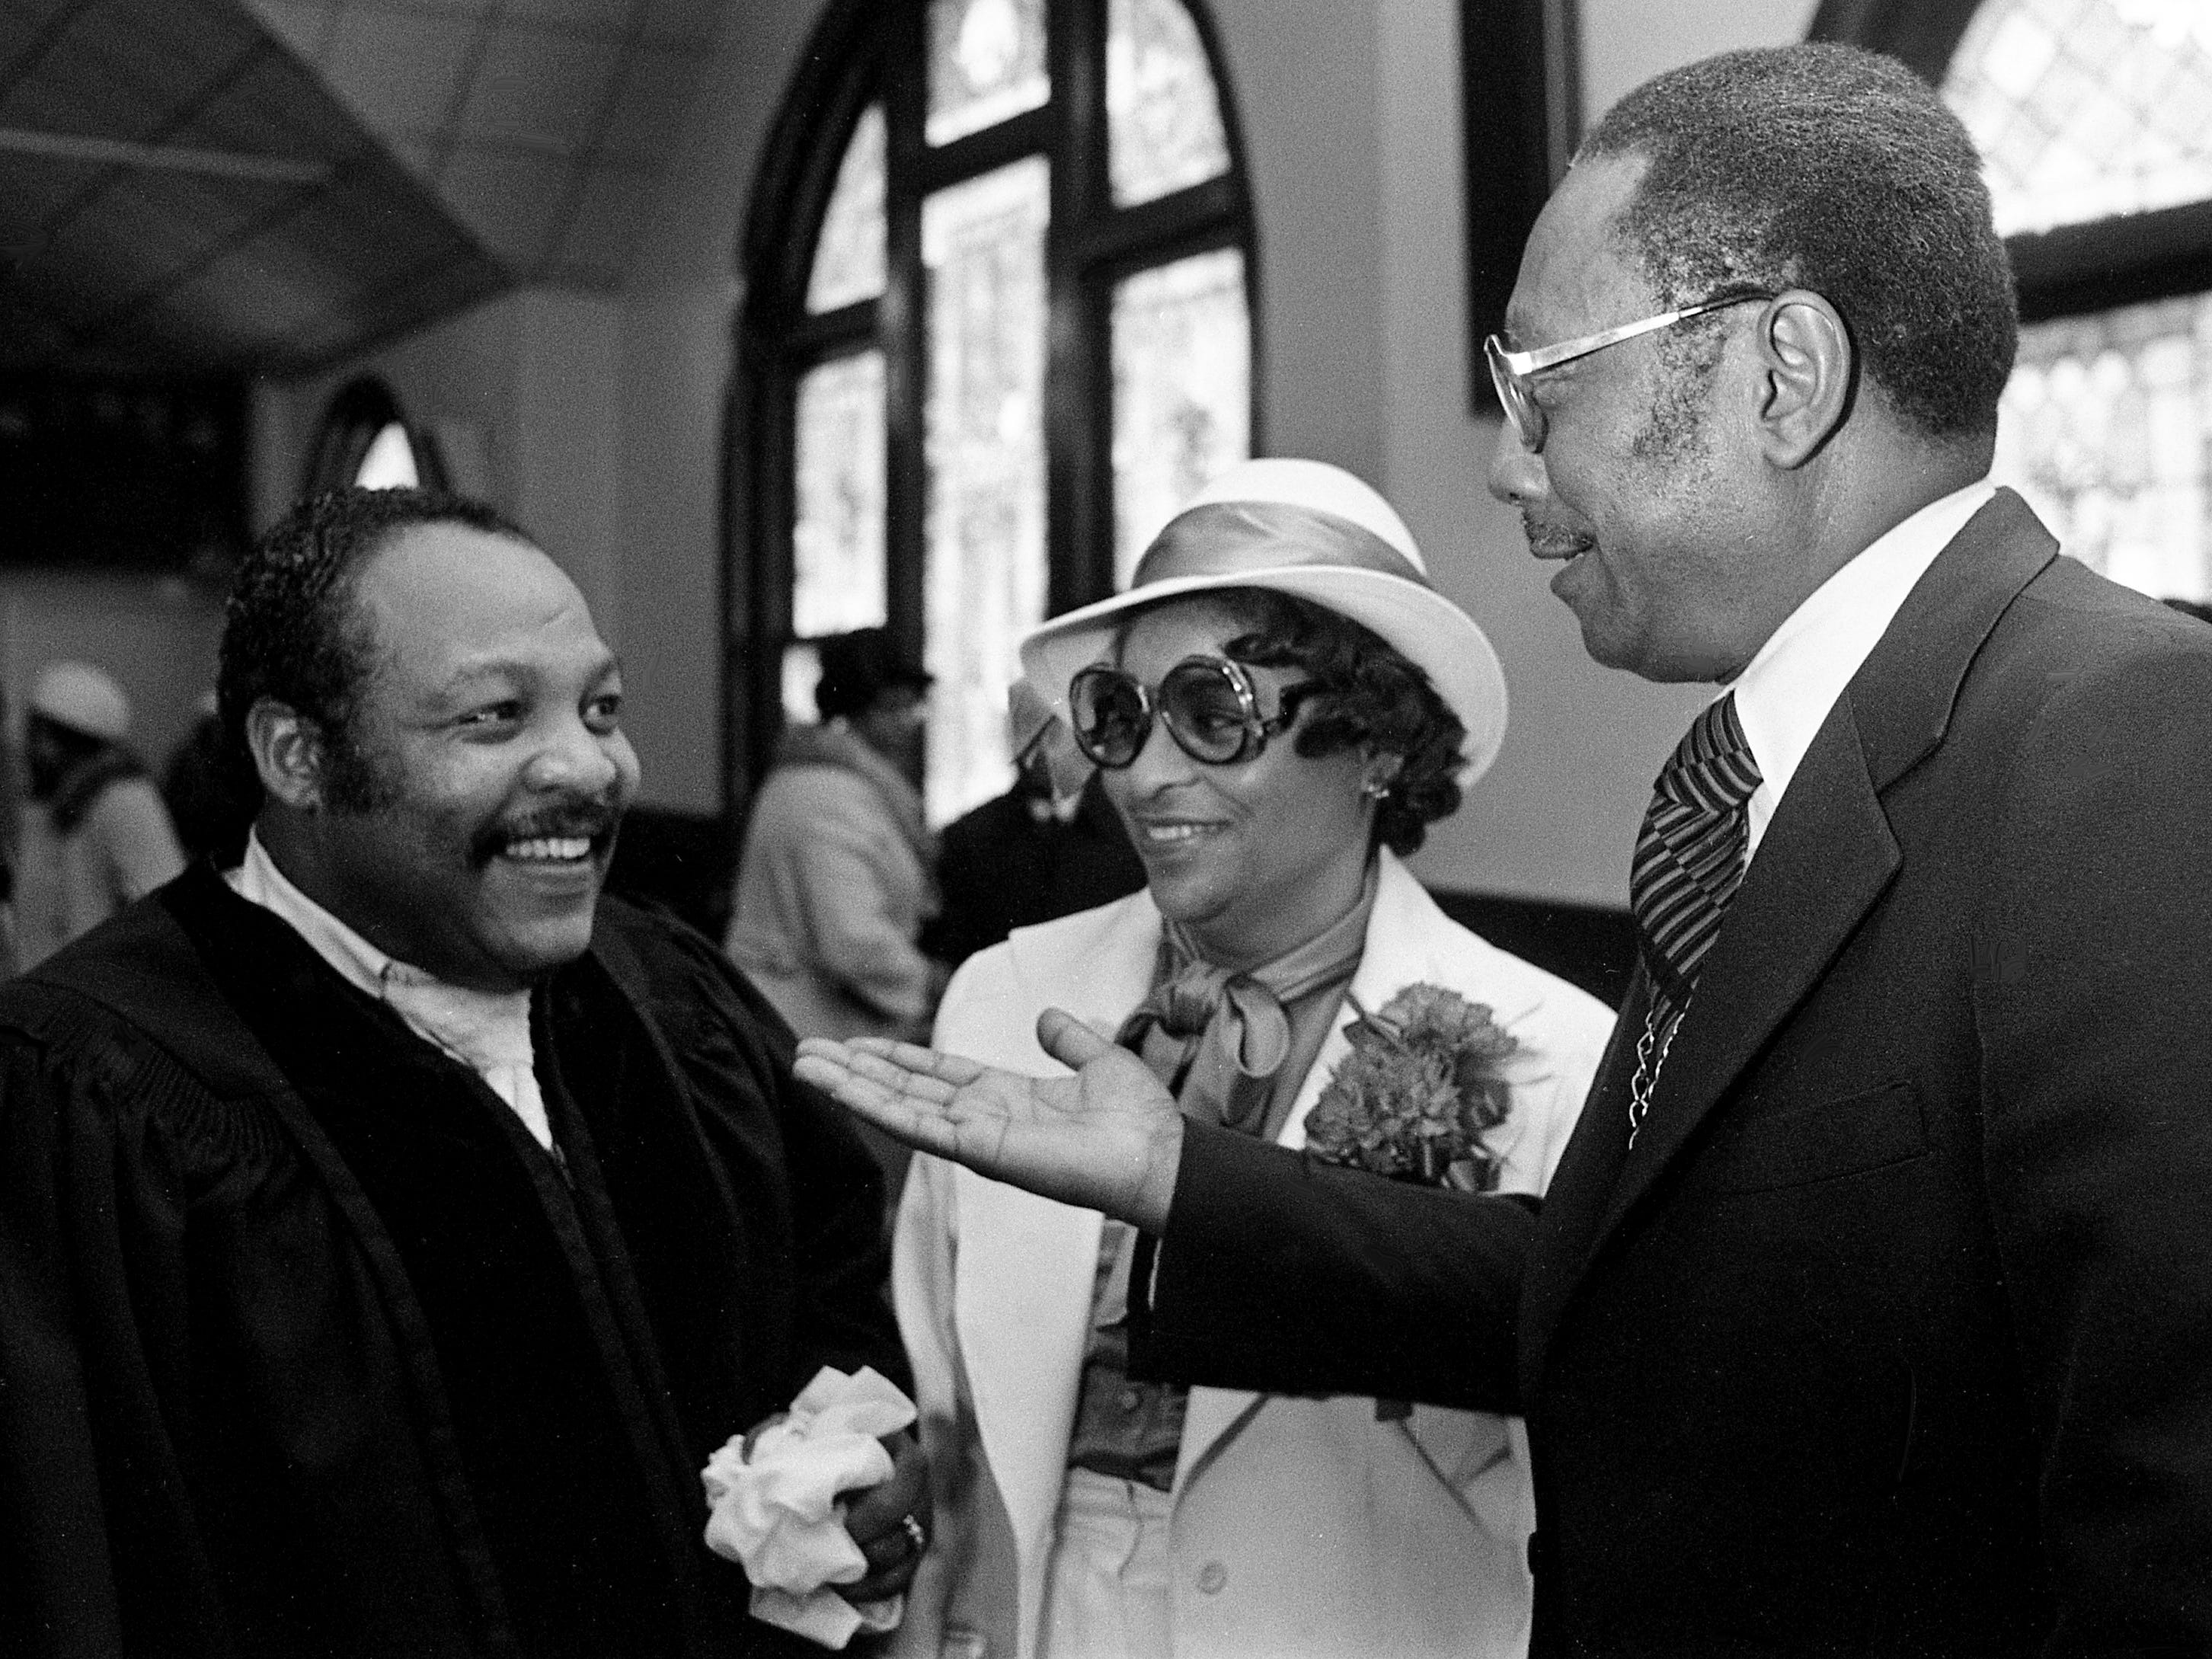 The Rev. William H. Ryan Jr., left, guest speaker at Mount Zion Baptist Church, congratulates the church pastor, the Rev. E.W. Roberson, right, on his seventh anniversary there as Mrs. Roberson looks on Feb. 25, 1979.